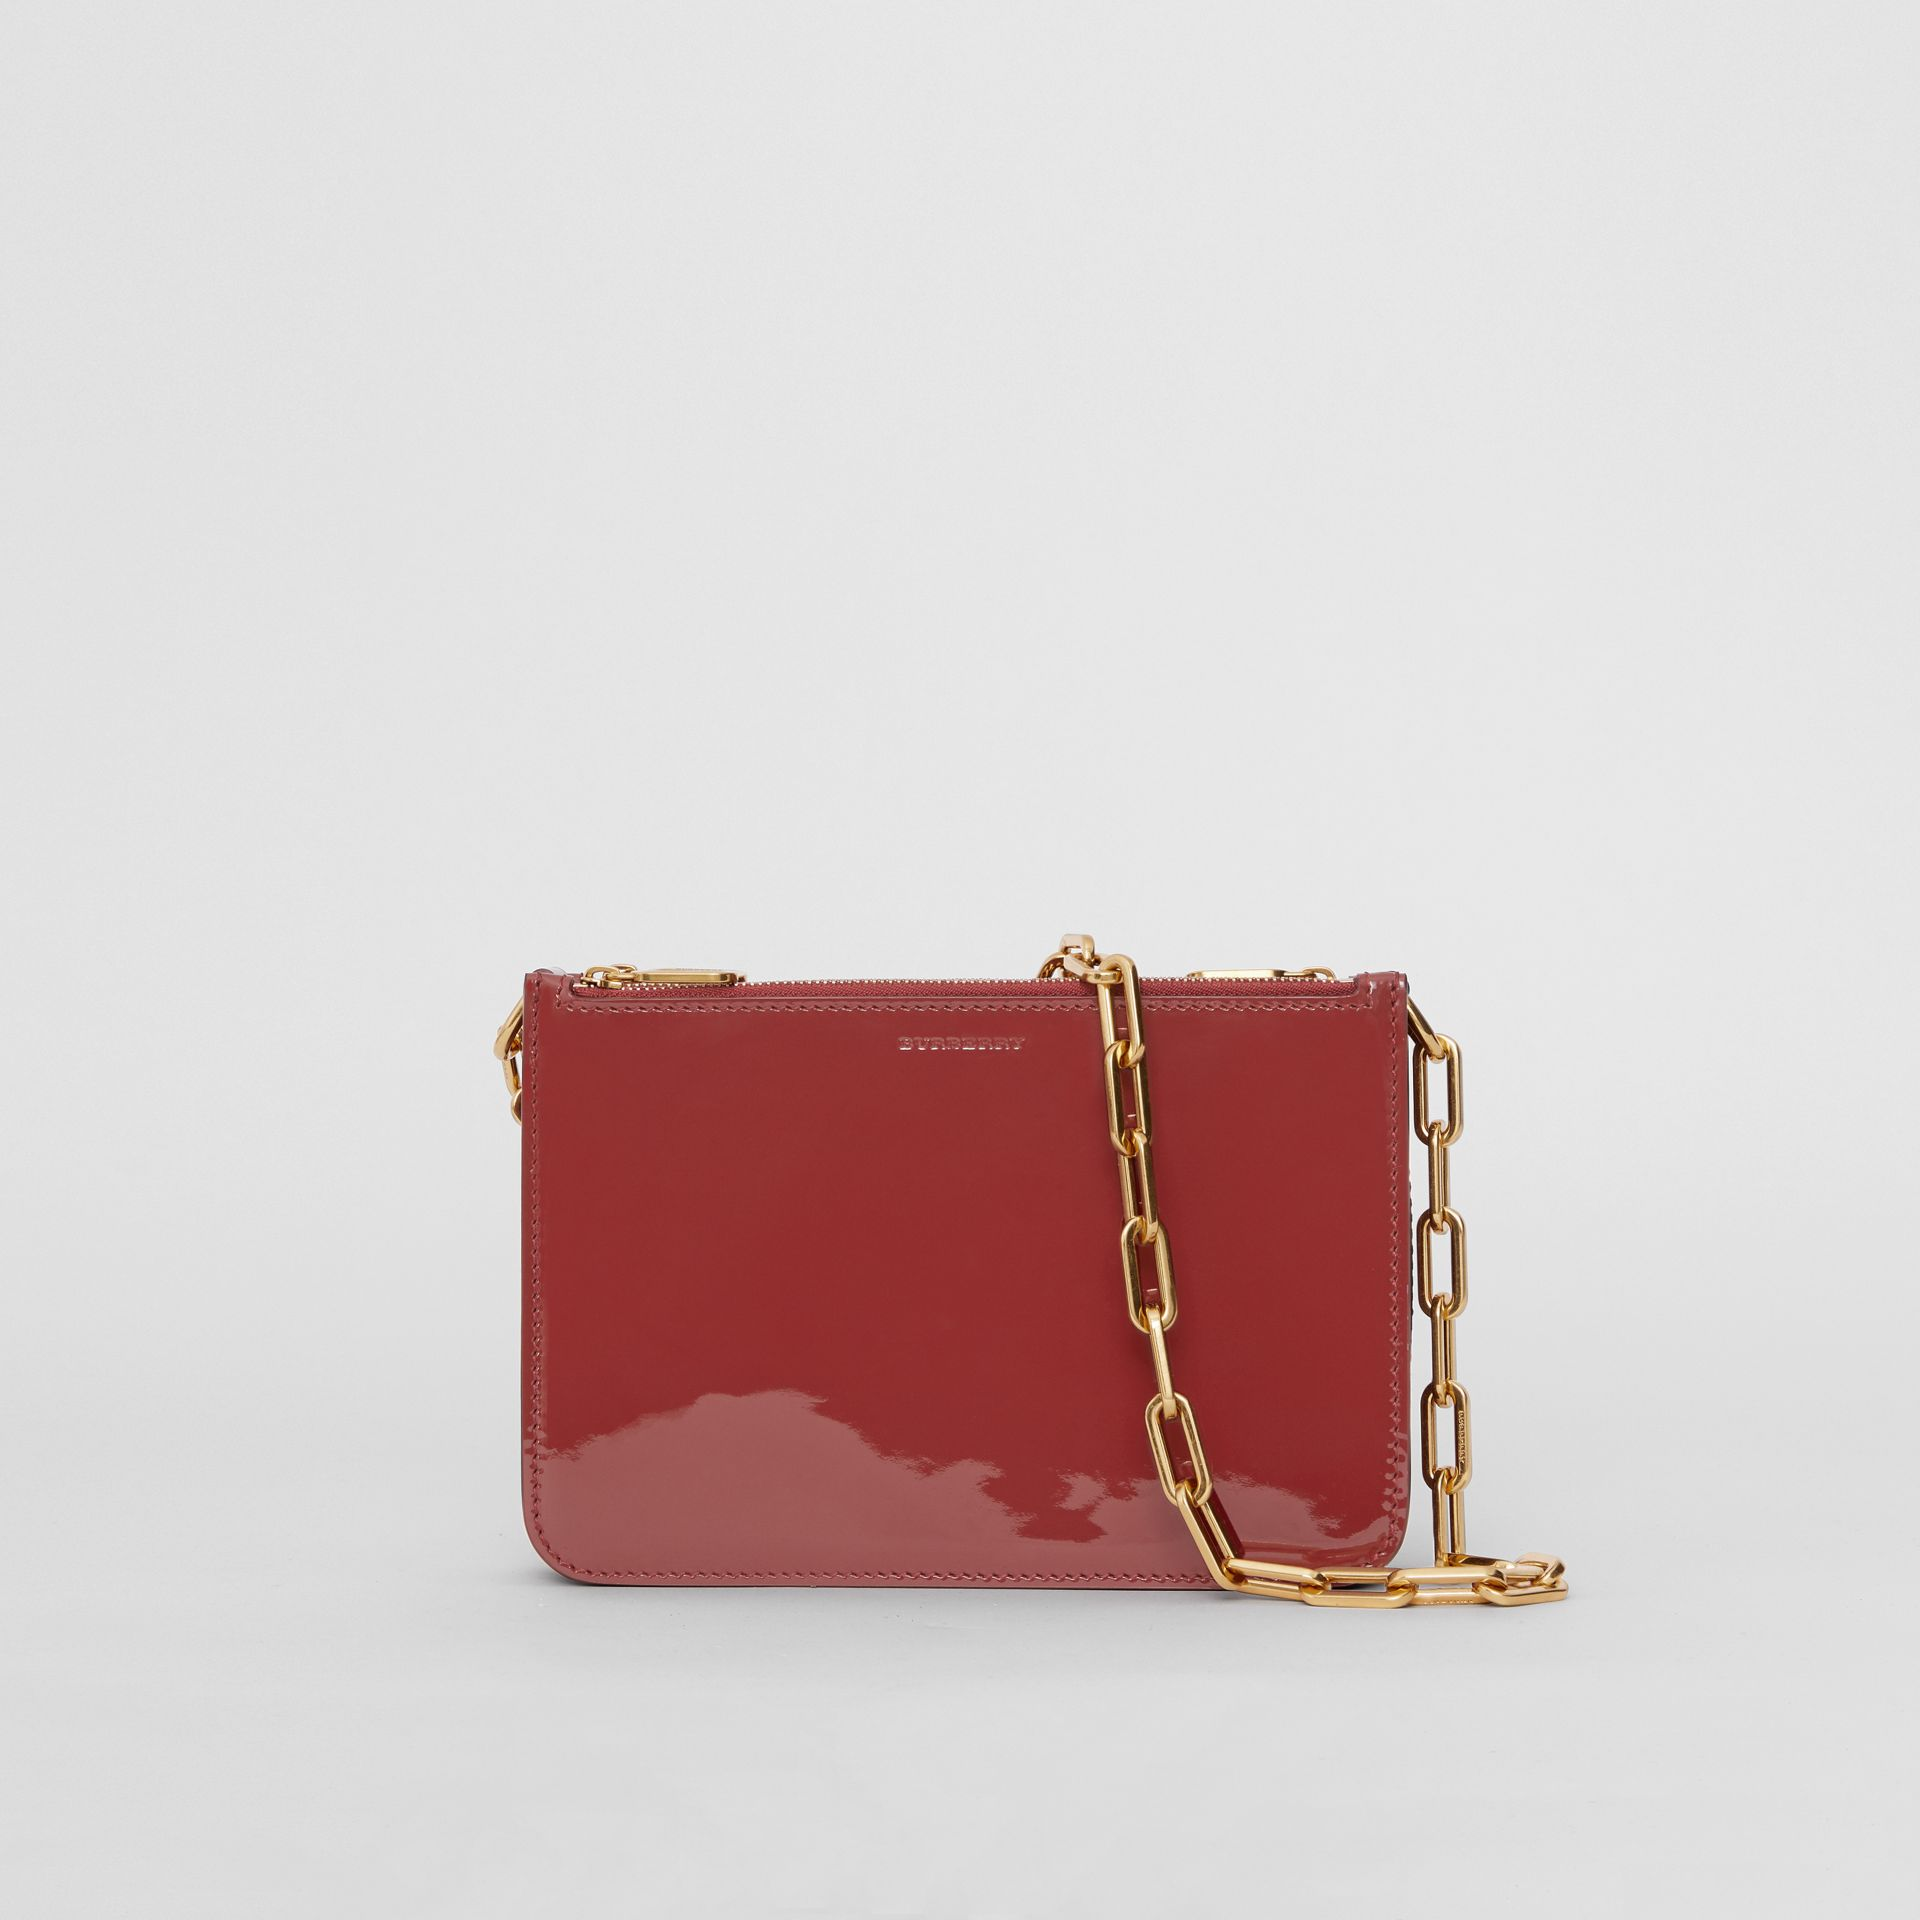 Triple Zip Patent Leather Crossbody Bag in Crimson - Women | Burberry - gallery image 0